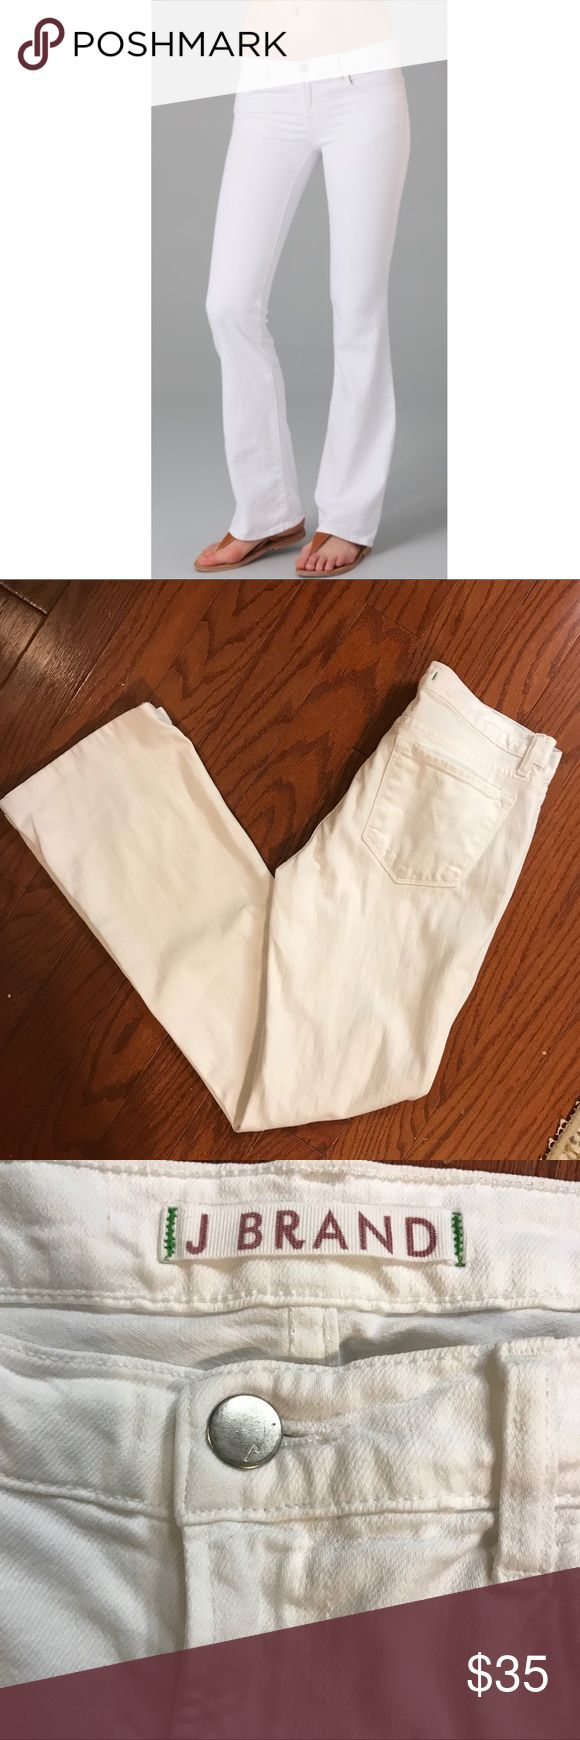 "J Brand White Jeans Bailey Slim Boot Cut #7875 Excellent pre-owned condition, J Brand Jeans in white...style Bailey   Approximate measurements:  Waist - 32""  Inseam - 31""  Rise - 8.5""  All reasonable offers will be considered.   Comes from my clean, smoke/pet free home.   Thanks for looking! J Brand Jeans Boot Cut"